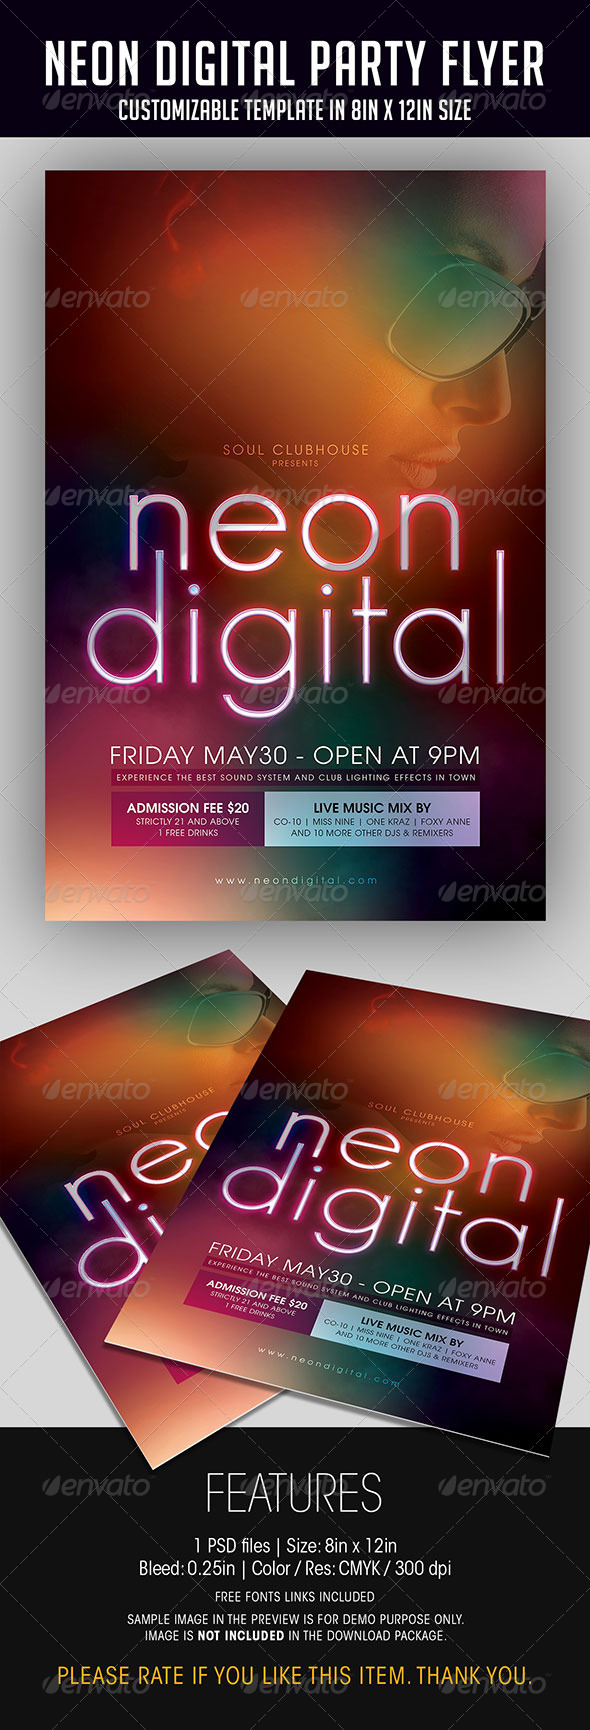 Neon Digital Party Flyer - Clubs & Parties Events